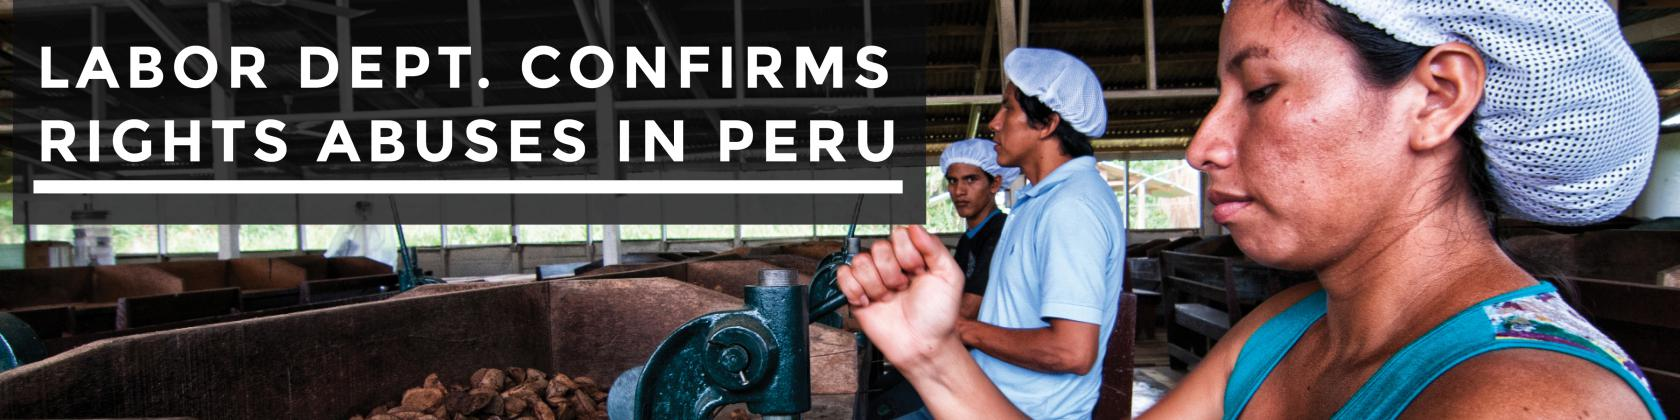 Workers process Brazil nuts in a Peruvian factory. Photo Credit: CC BY-NC 2.0, Photo by Marco Simola for Center for International Forestry Research (CIFOR)